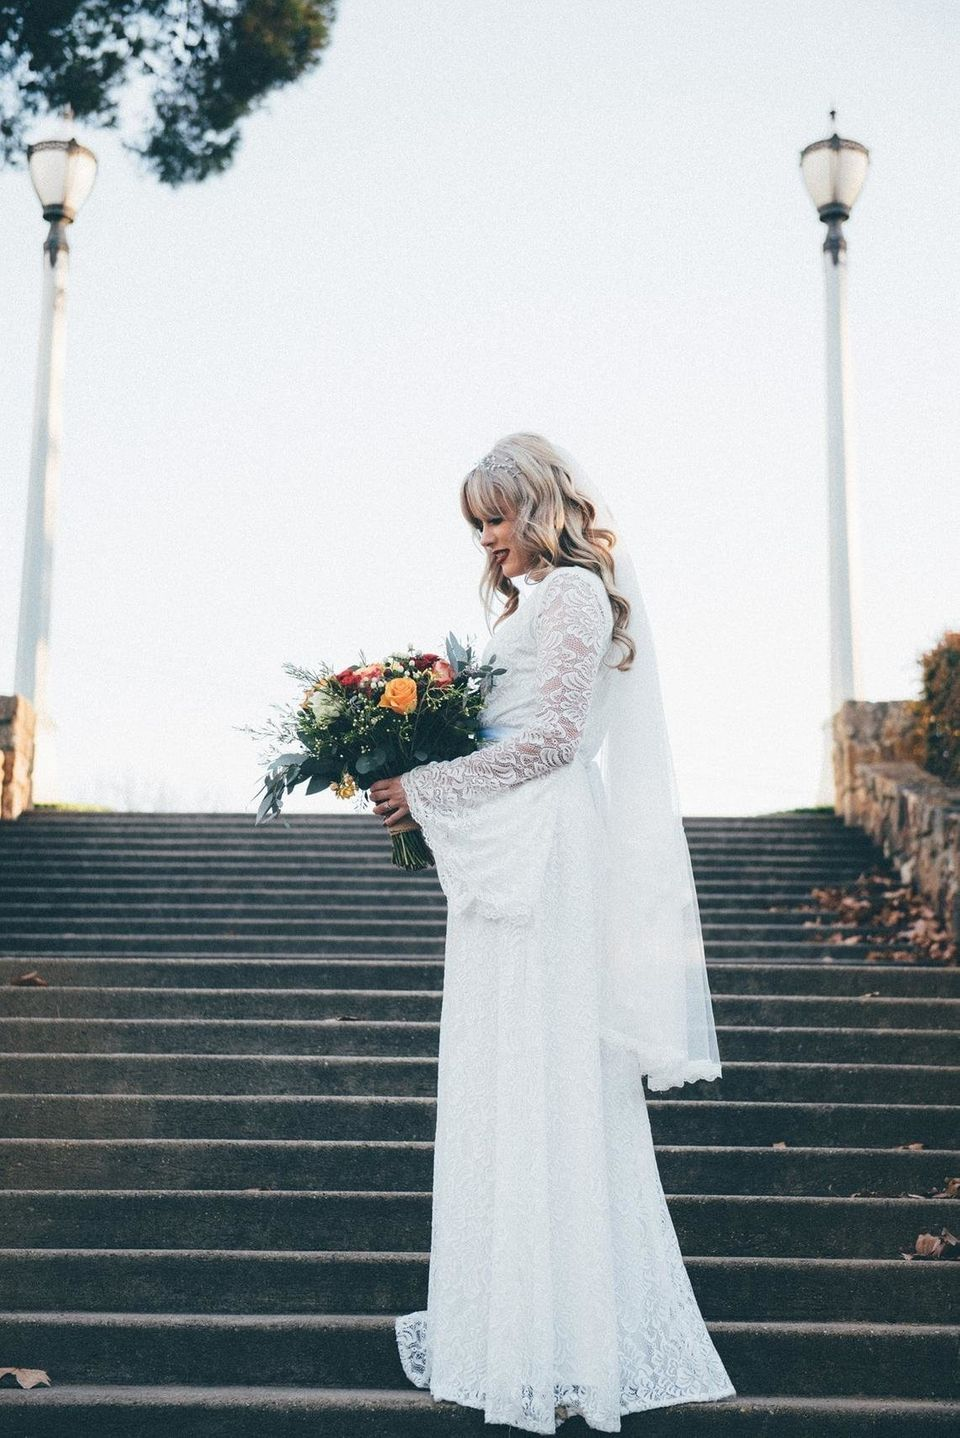 The Best Etsy Wedding Dress Shops To Find A Unique Dress Online Huffpost Life